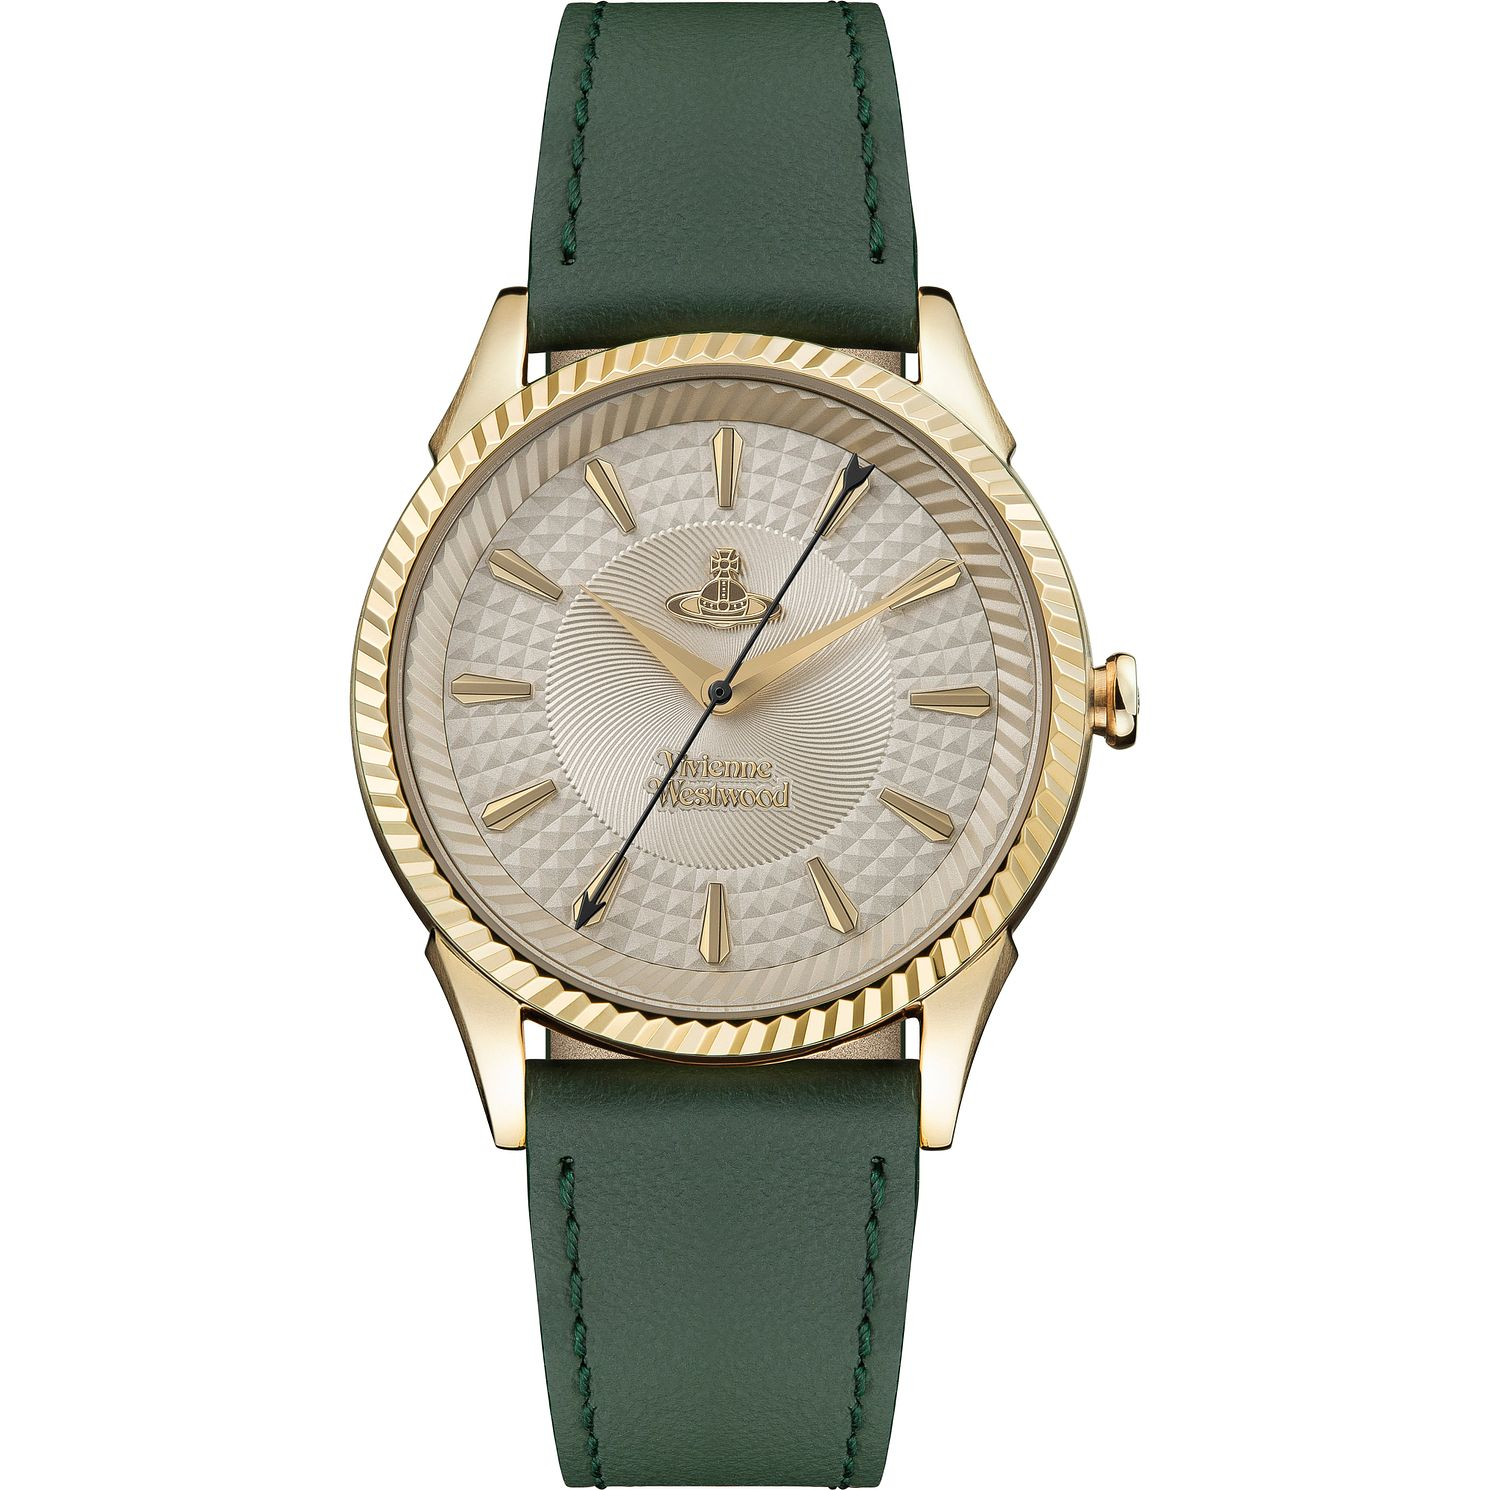 Vivienne Westwood Seymour Ladies' Green Leather Strap Watch - Product number 4898516